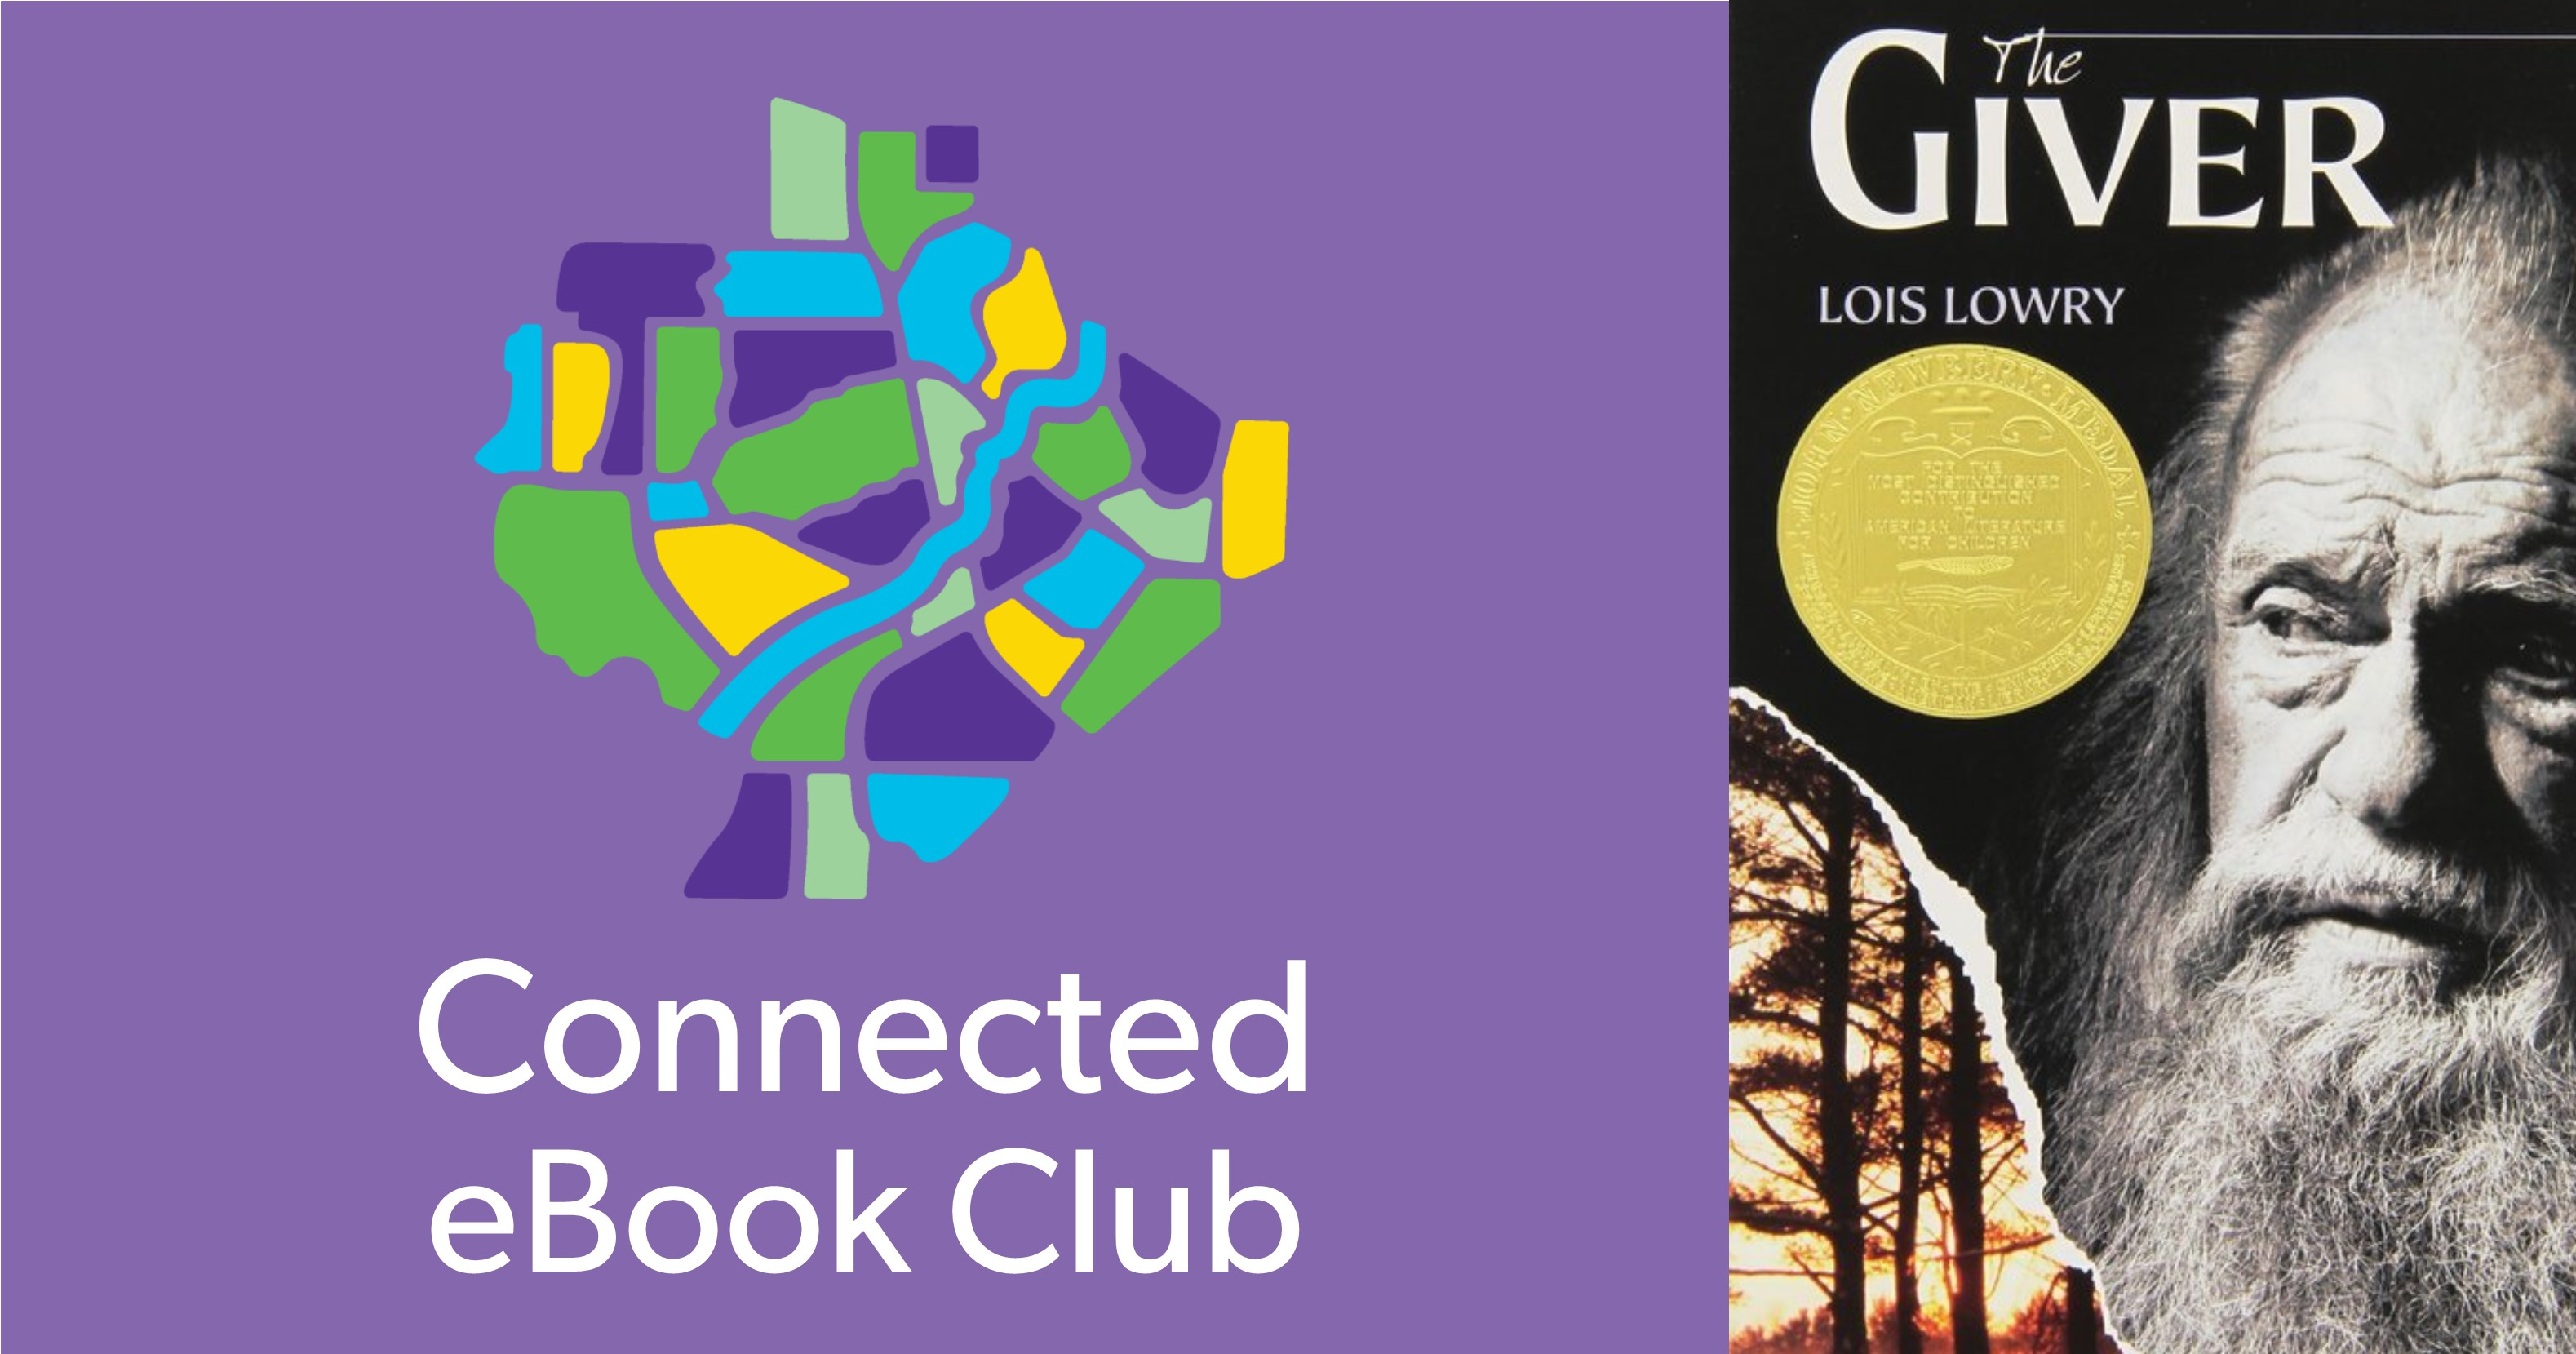 ONLINE -- Connected eBook Club | The Giver